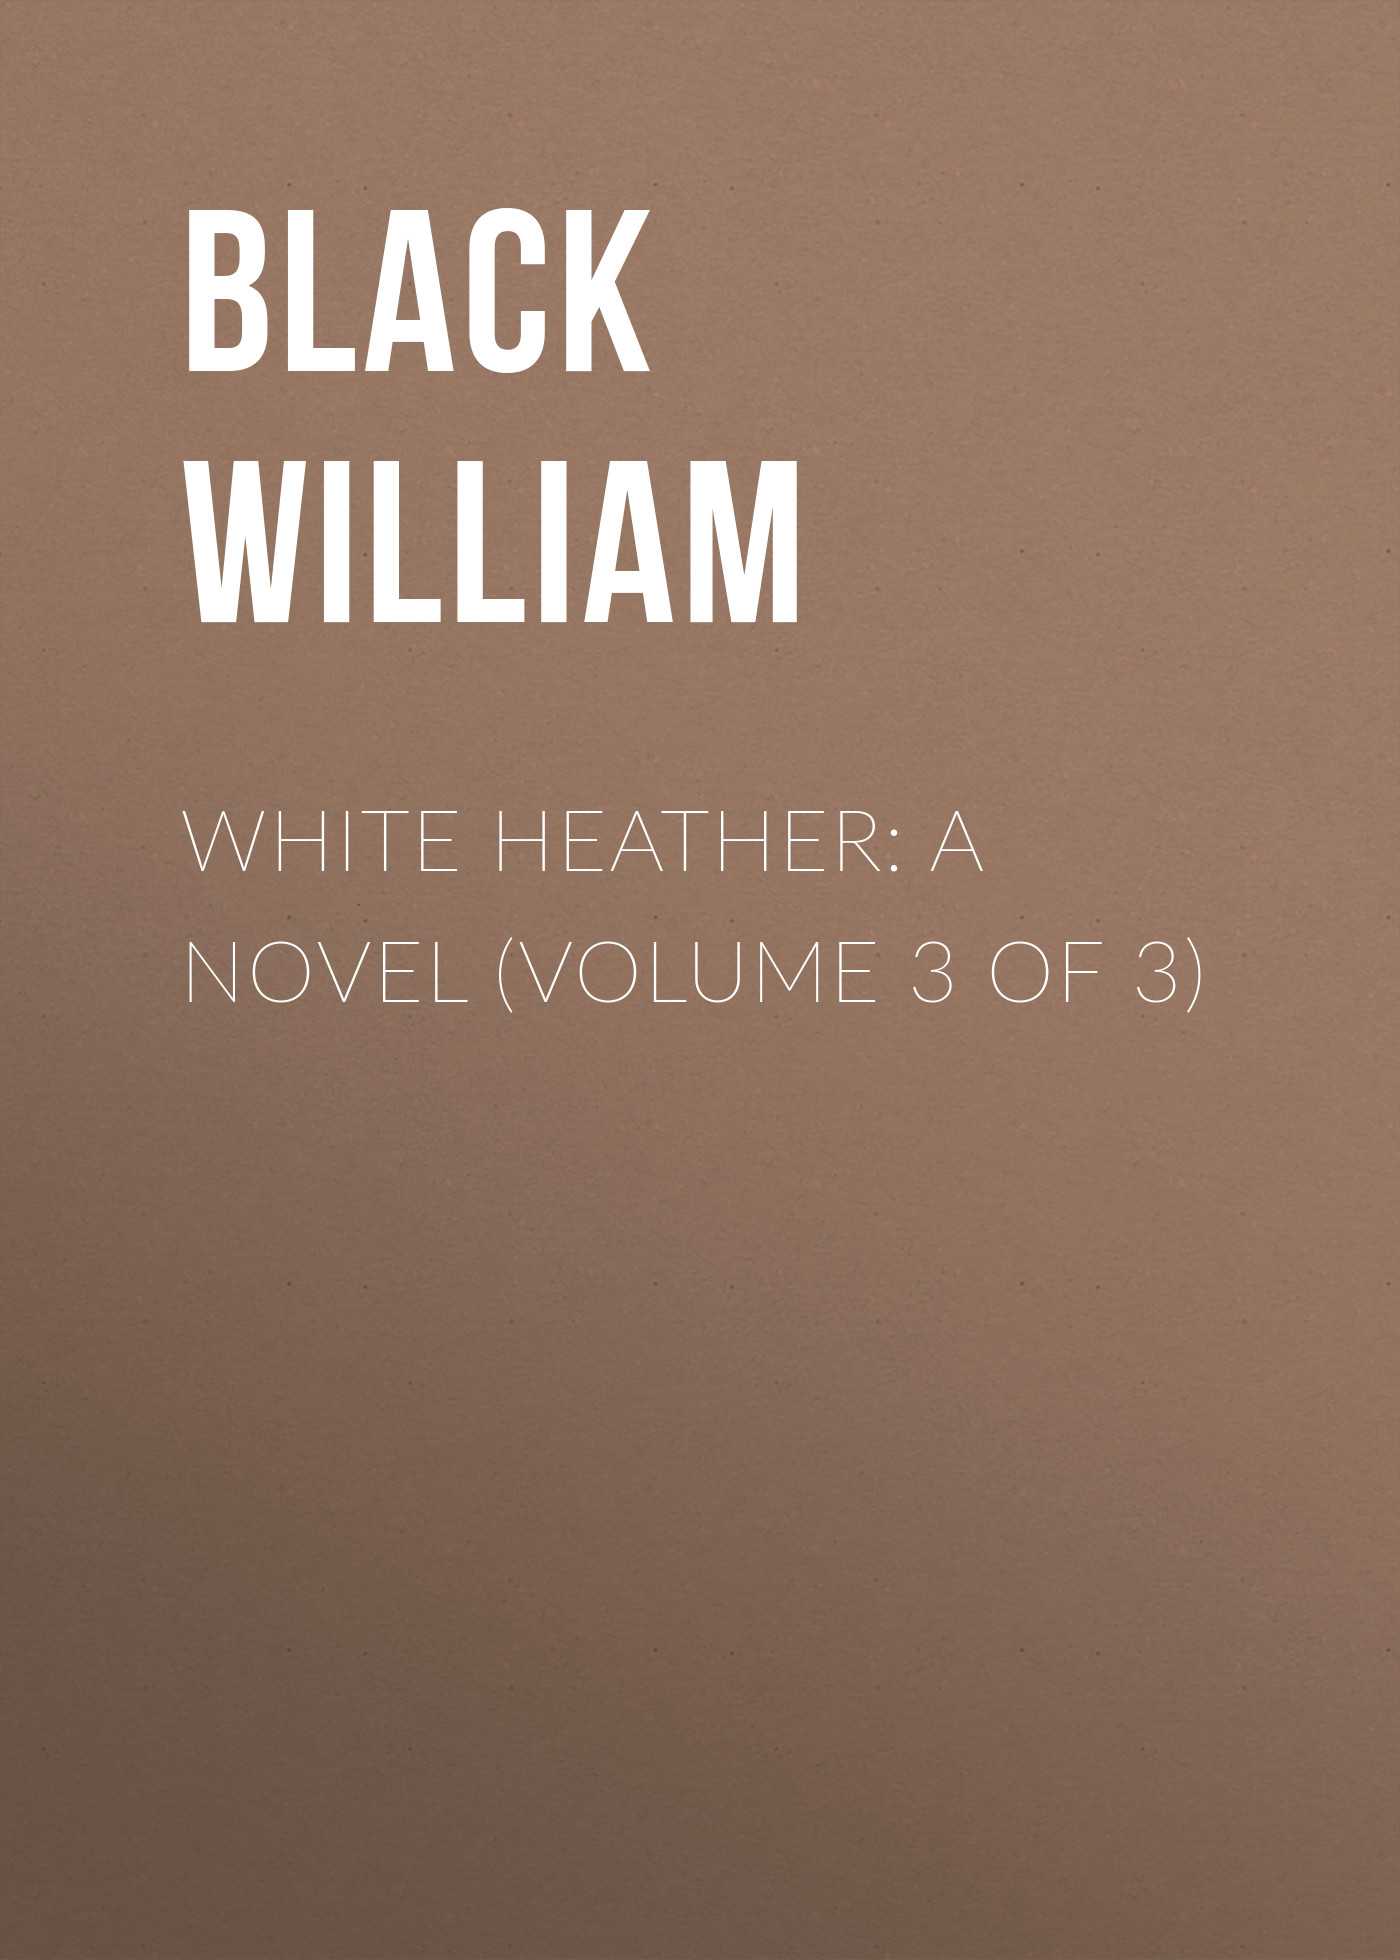 Black William White Heather: A Novel (Volume 3 of 3) white 3 heads nordic american laboratory white magic bottle contemporary adornment the modern novel lamp 2017